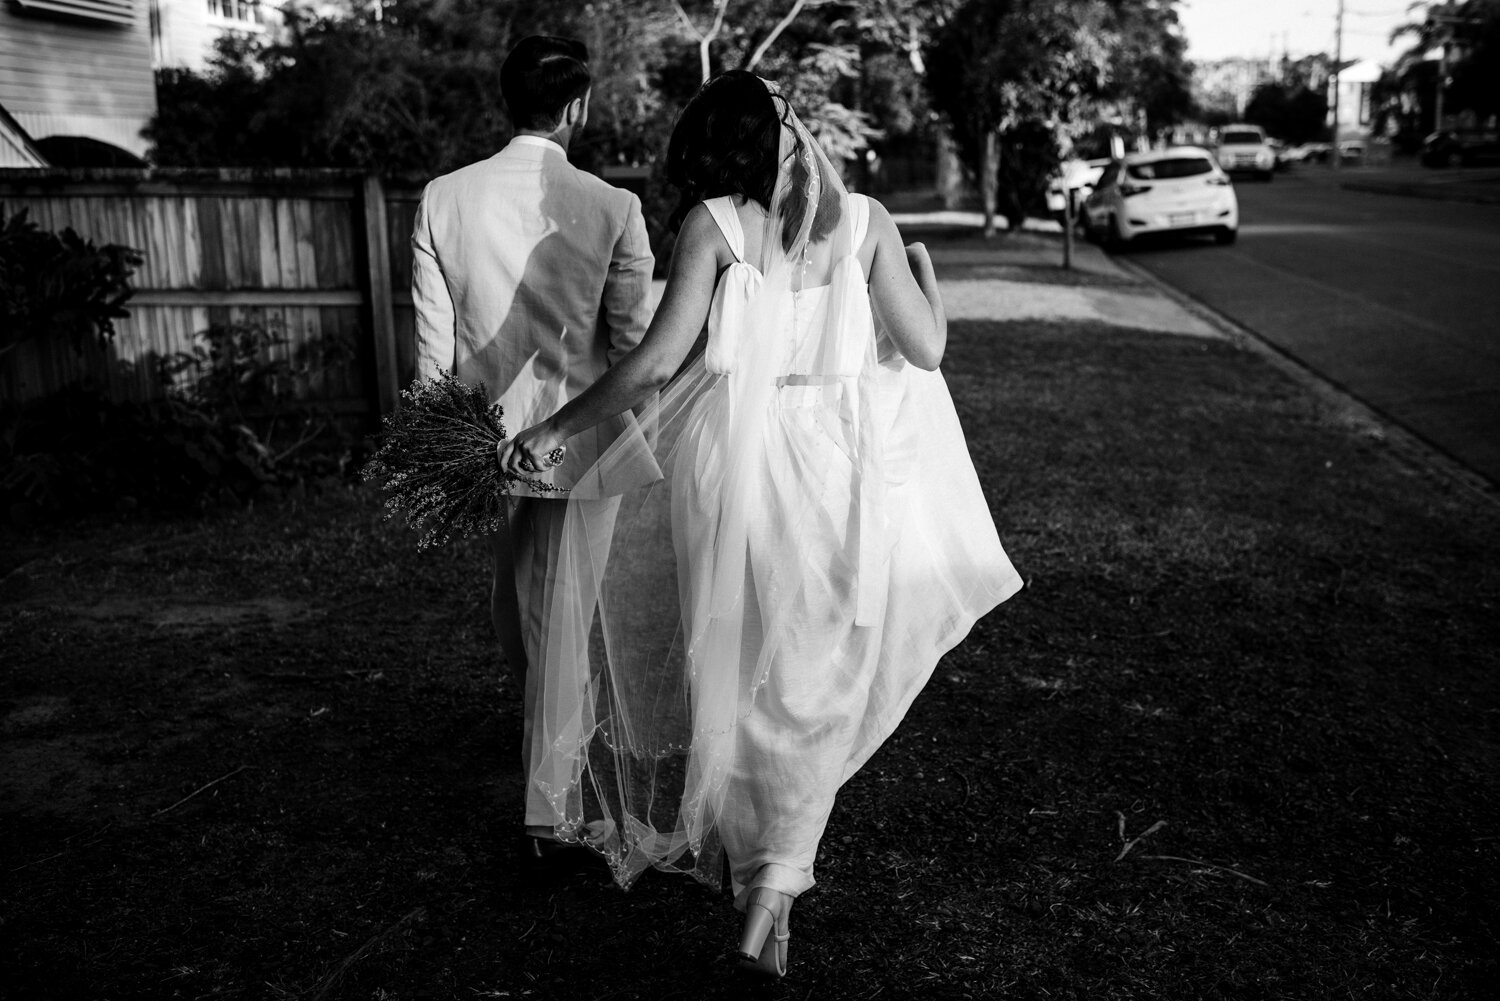 Brisbane Wedding Photographer | Engagement-Elopement Photography-60.jpg